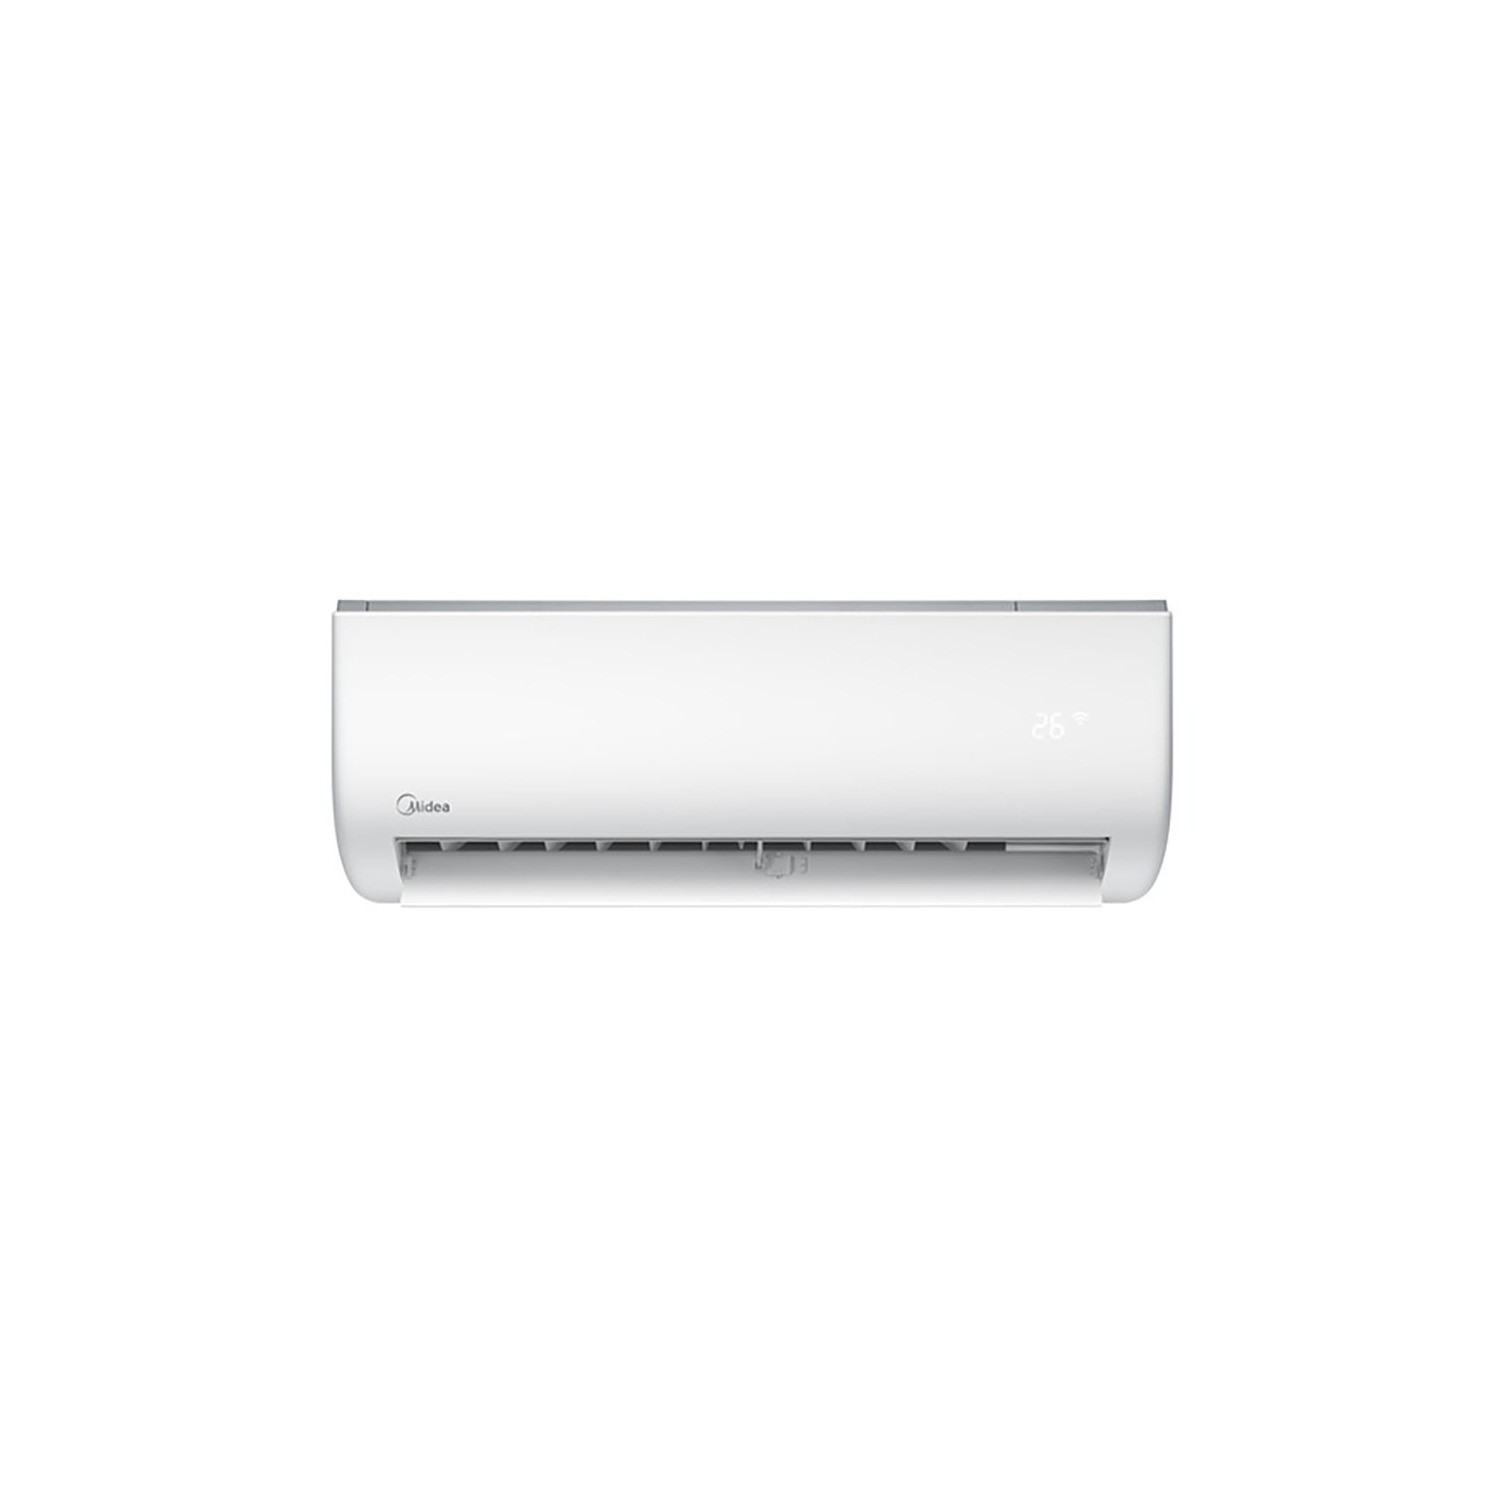 Midea AE24 24000 BTU A++ Easy-fit DC Inverter Wall Split Air Conditioner  with Heat Pump and 5 years warranty